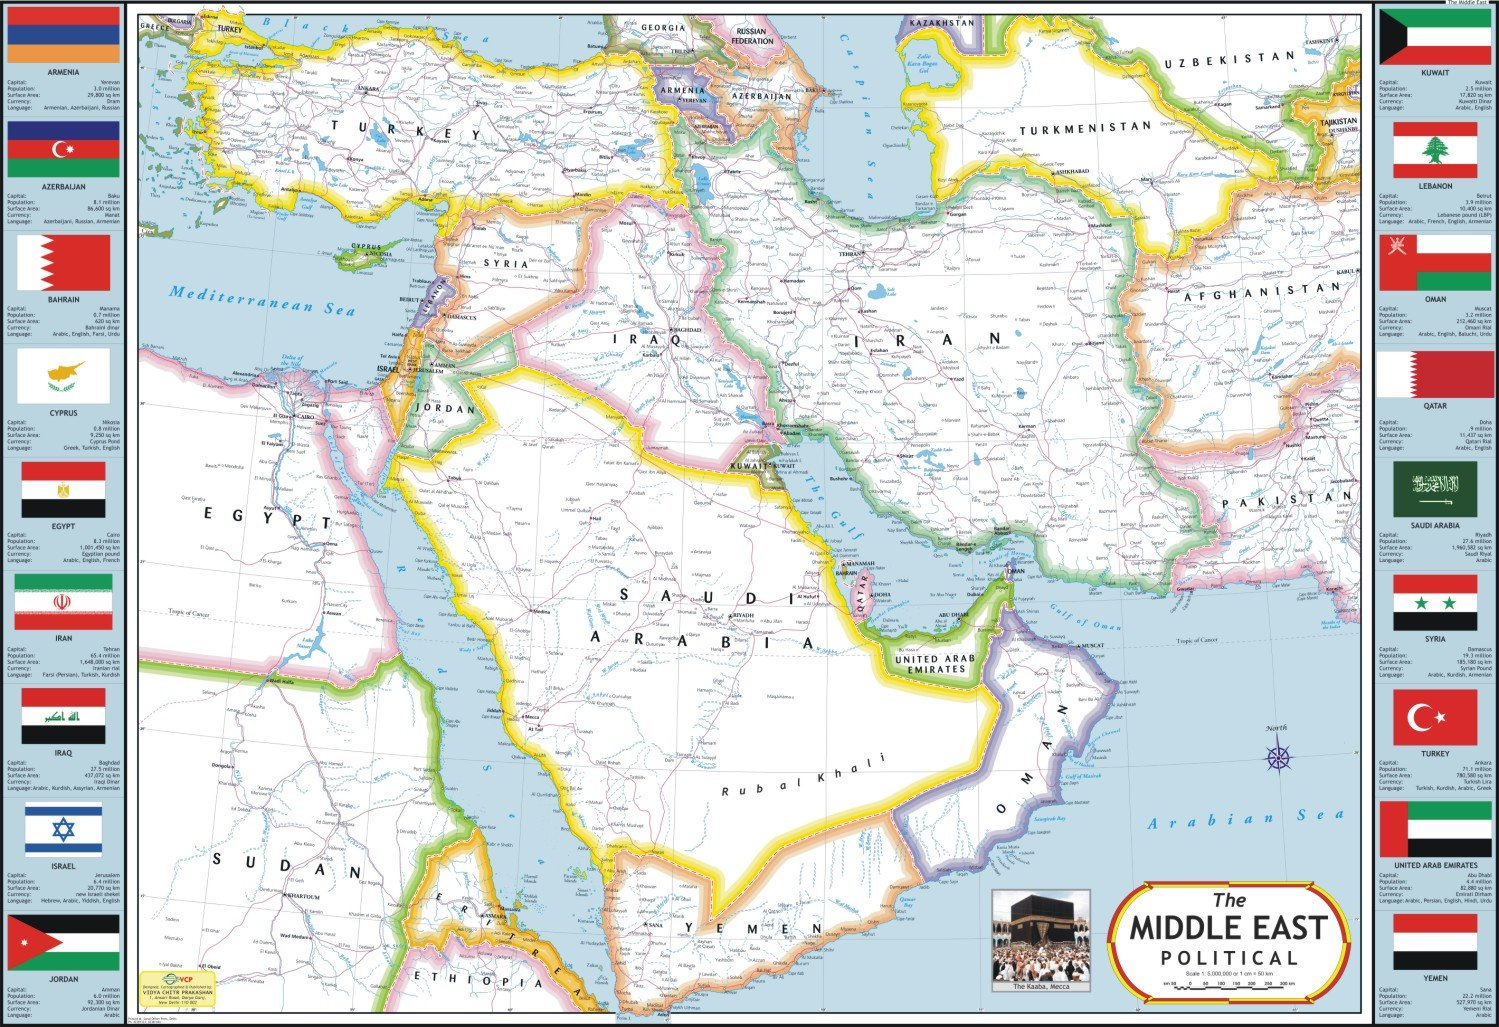 Buy Middle East Map Saudi Arabia Yemen Oman Iran Iraq Syria